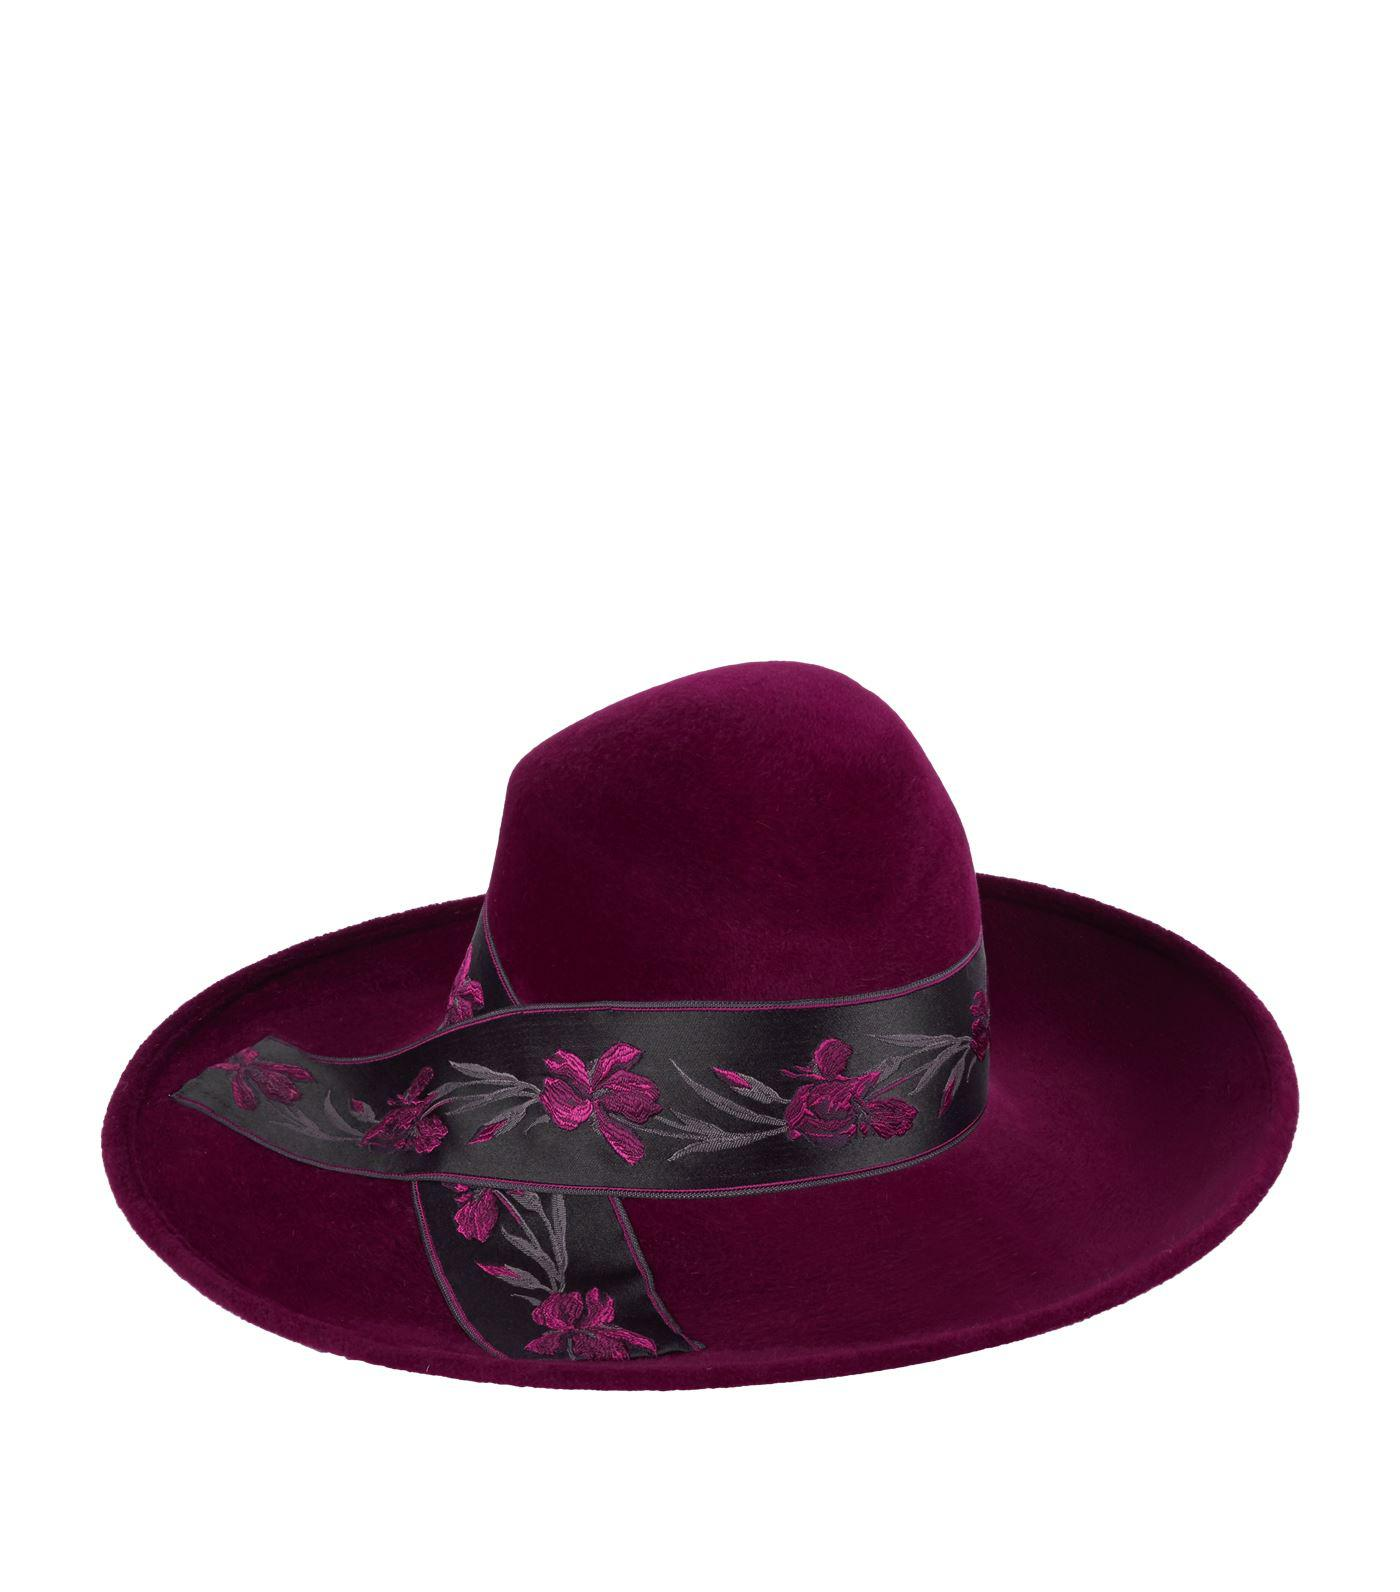 Philip Treacy Large Floral Band Hat in Purple - Lyst 5fb50807f306